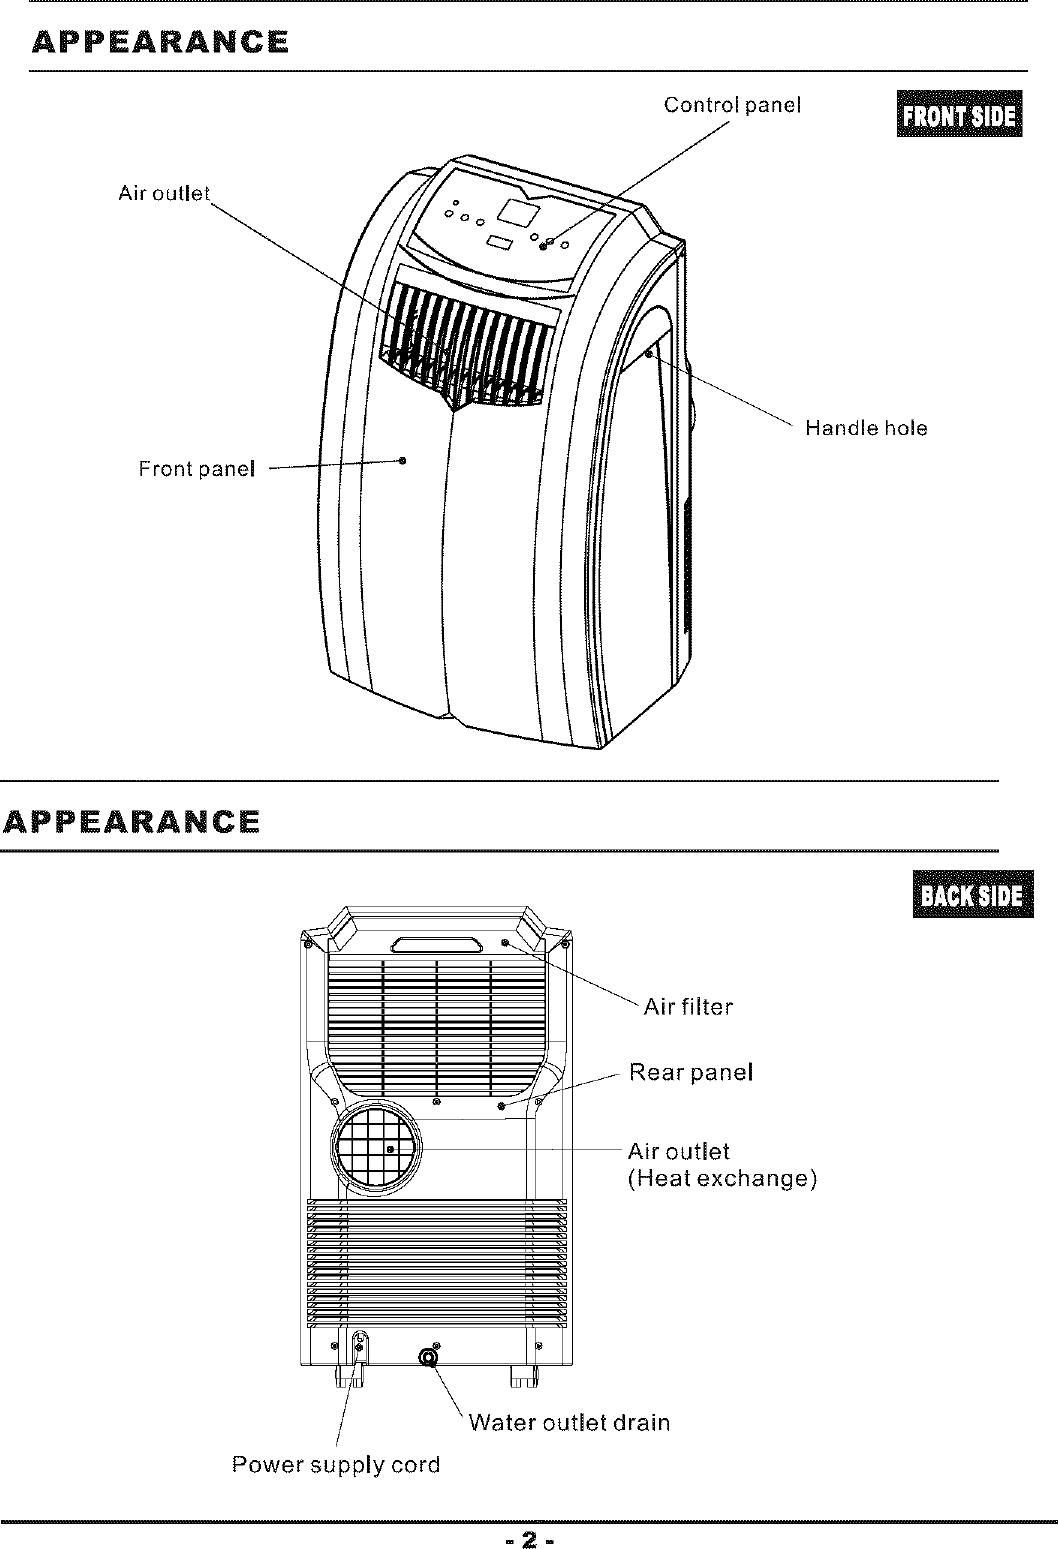 Haier Air Conditioner Wiring Diagram - All Diagram Schematics on